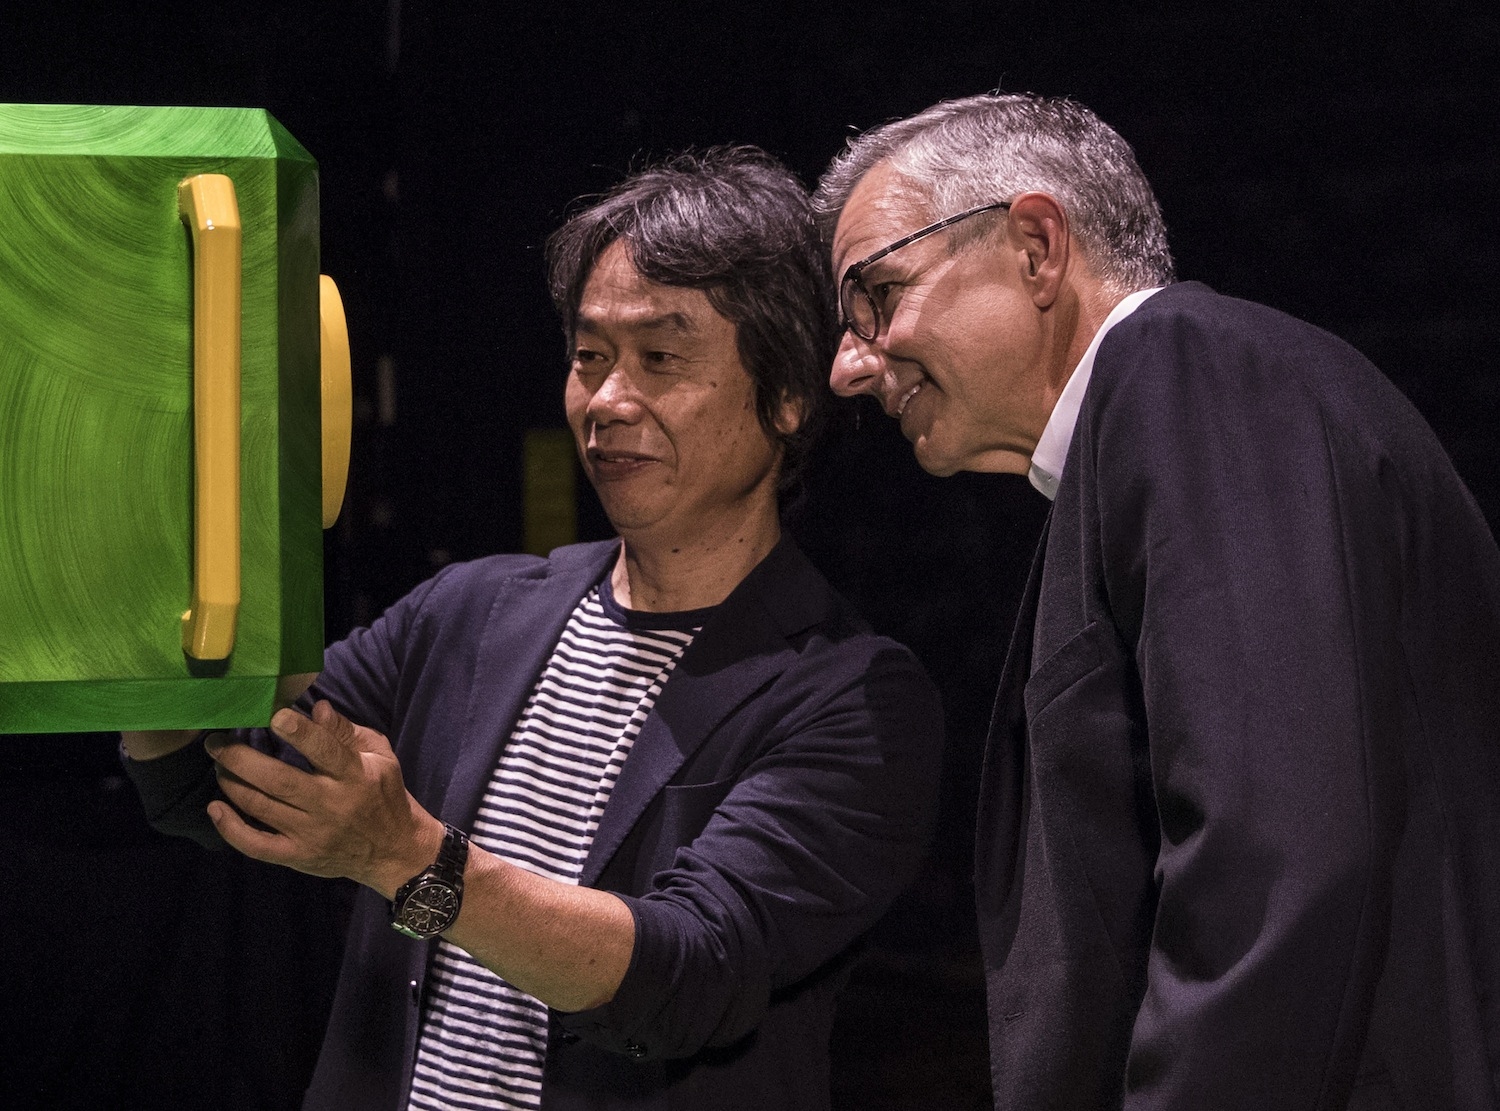 Shigeru Miyamoto, Senior Managing Director and Creative Fellow of Nintendo, discusses attraction features with Mark Woodbury, President of Universal Creative. © 2016 Universal Studios. All Rights Reserved.